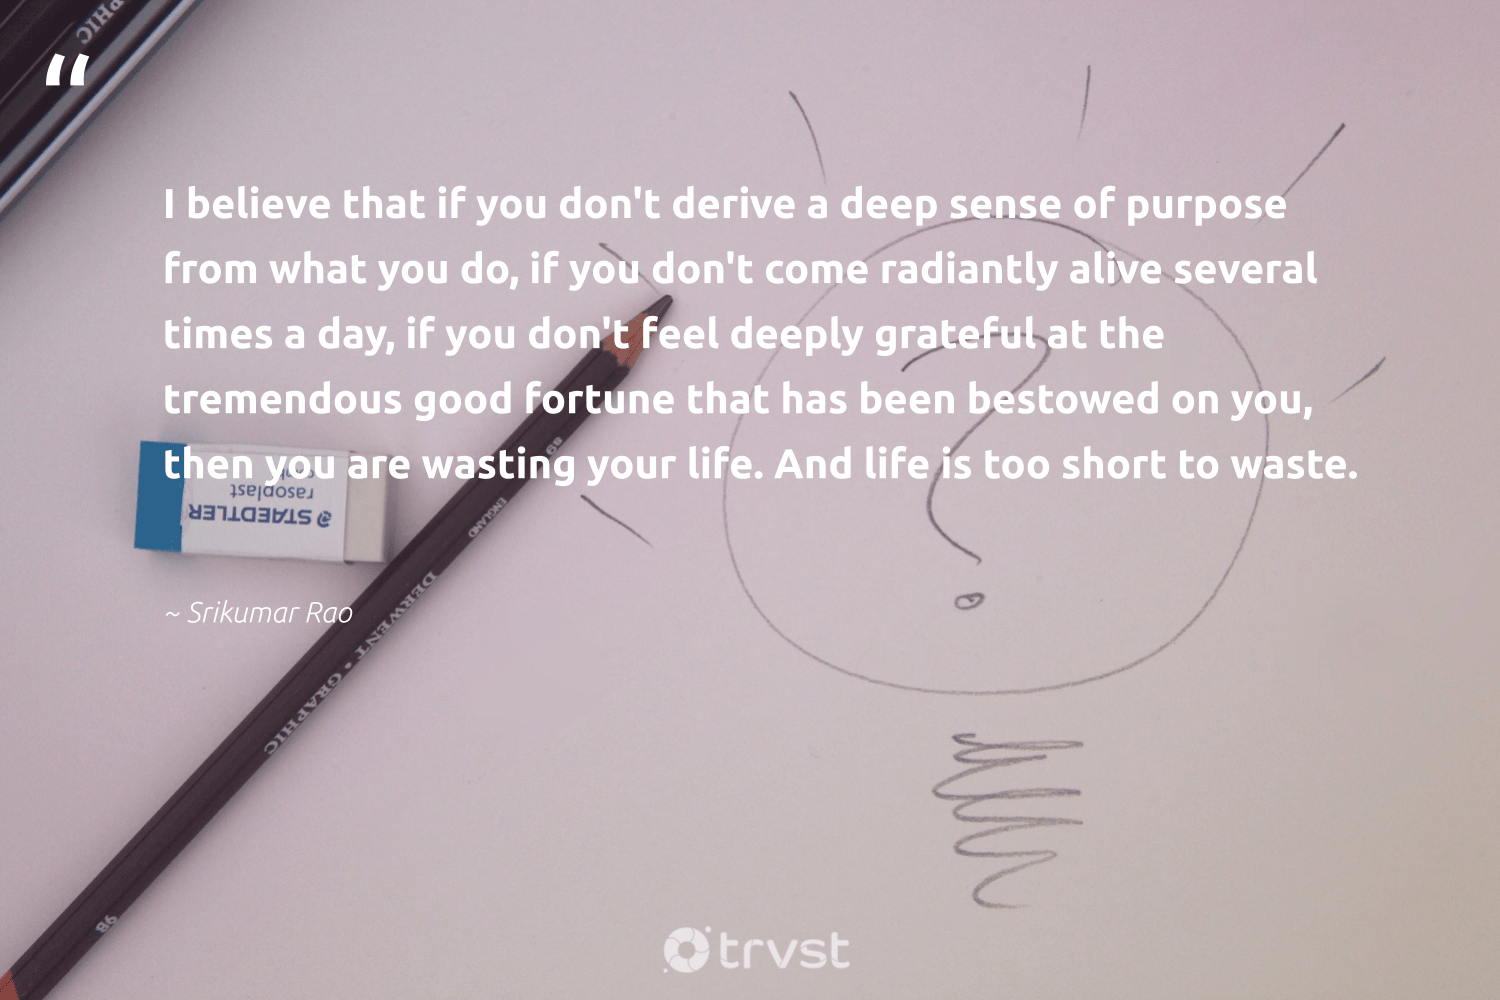 """""""I believe that if you don't derive a deep sense of purpose from what you do, if you don't come radiantly alive several times a day, if you don't feel deeply grateful at the tremendous good fortune that has been bestowed on you, then you are wasting your life. And life is too short to waste.""""  - Srikumar Rao #trvst #quotes #waste #purpose #findingpupose #dogood #nevergiveup #collectiveaction #purposedriven #weareallone #mindset #impact"""